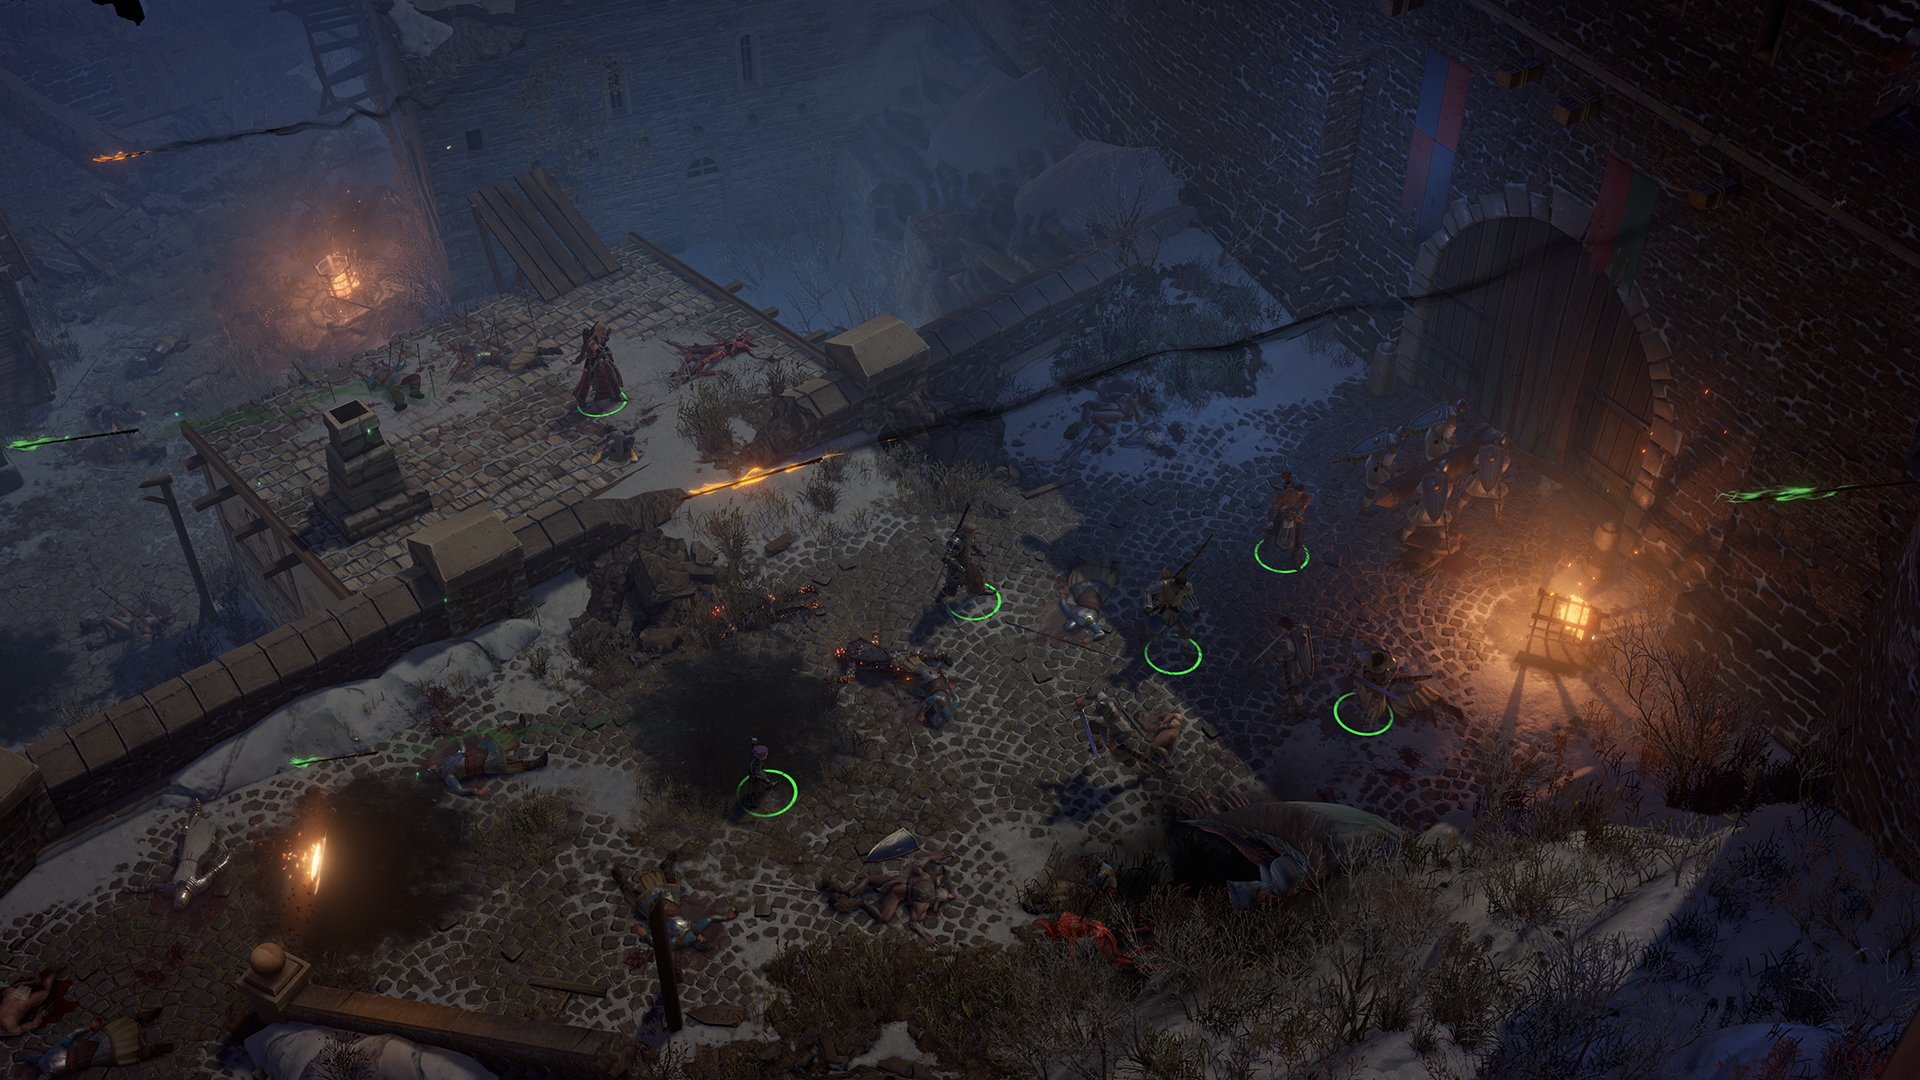 Pathfinder: Wrath of the Righteous is looking to up the ante with new features